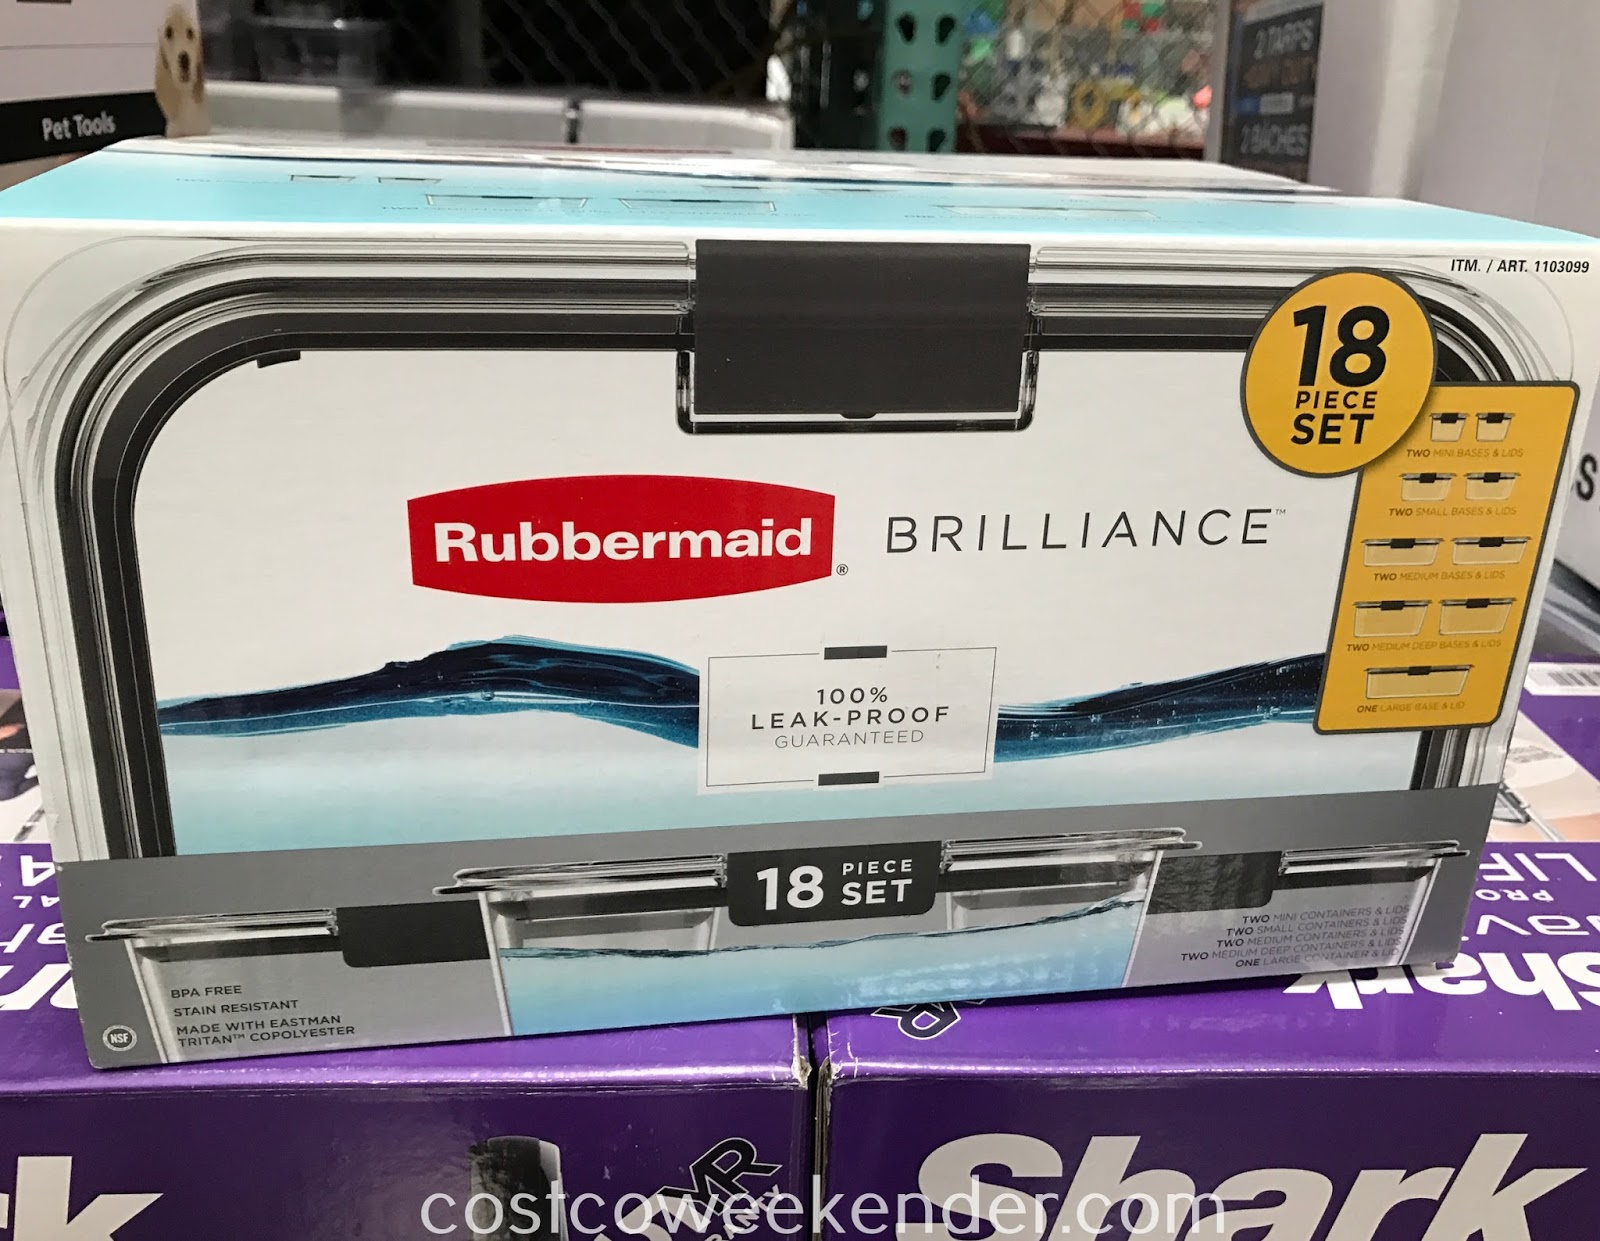 Store food and leftovers in the Rubbermaid Brilliance 18pc Food Storage Set